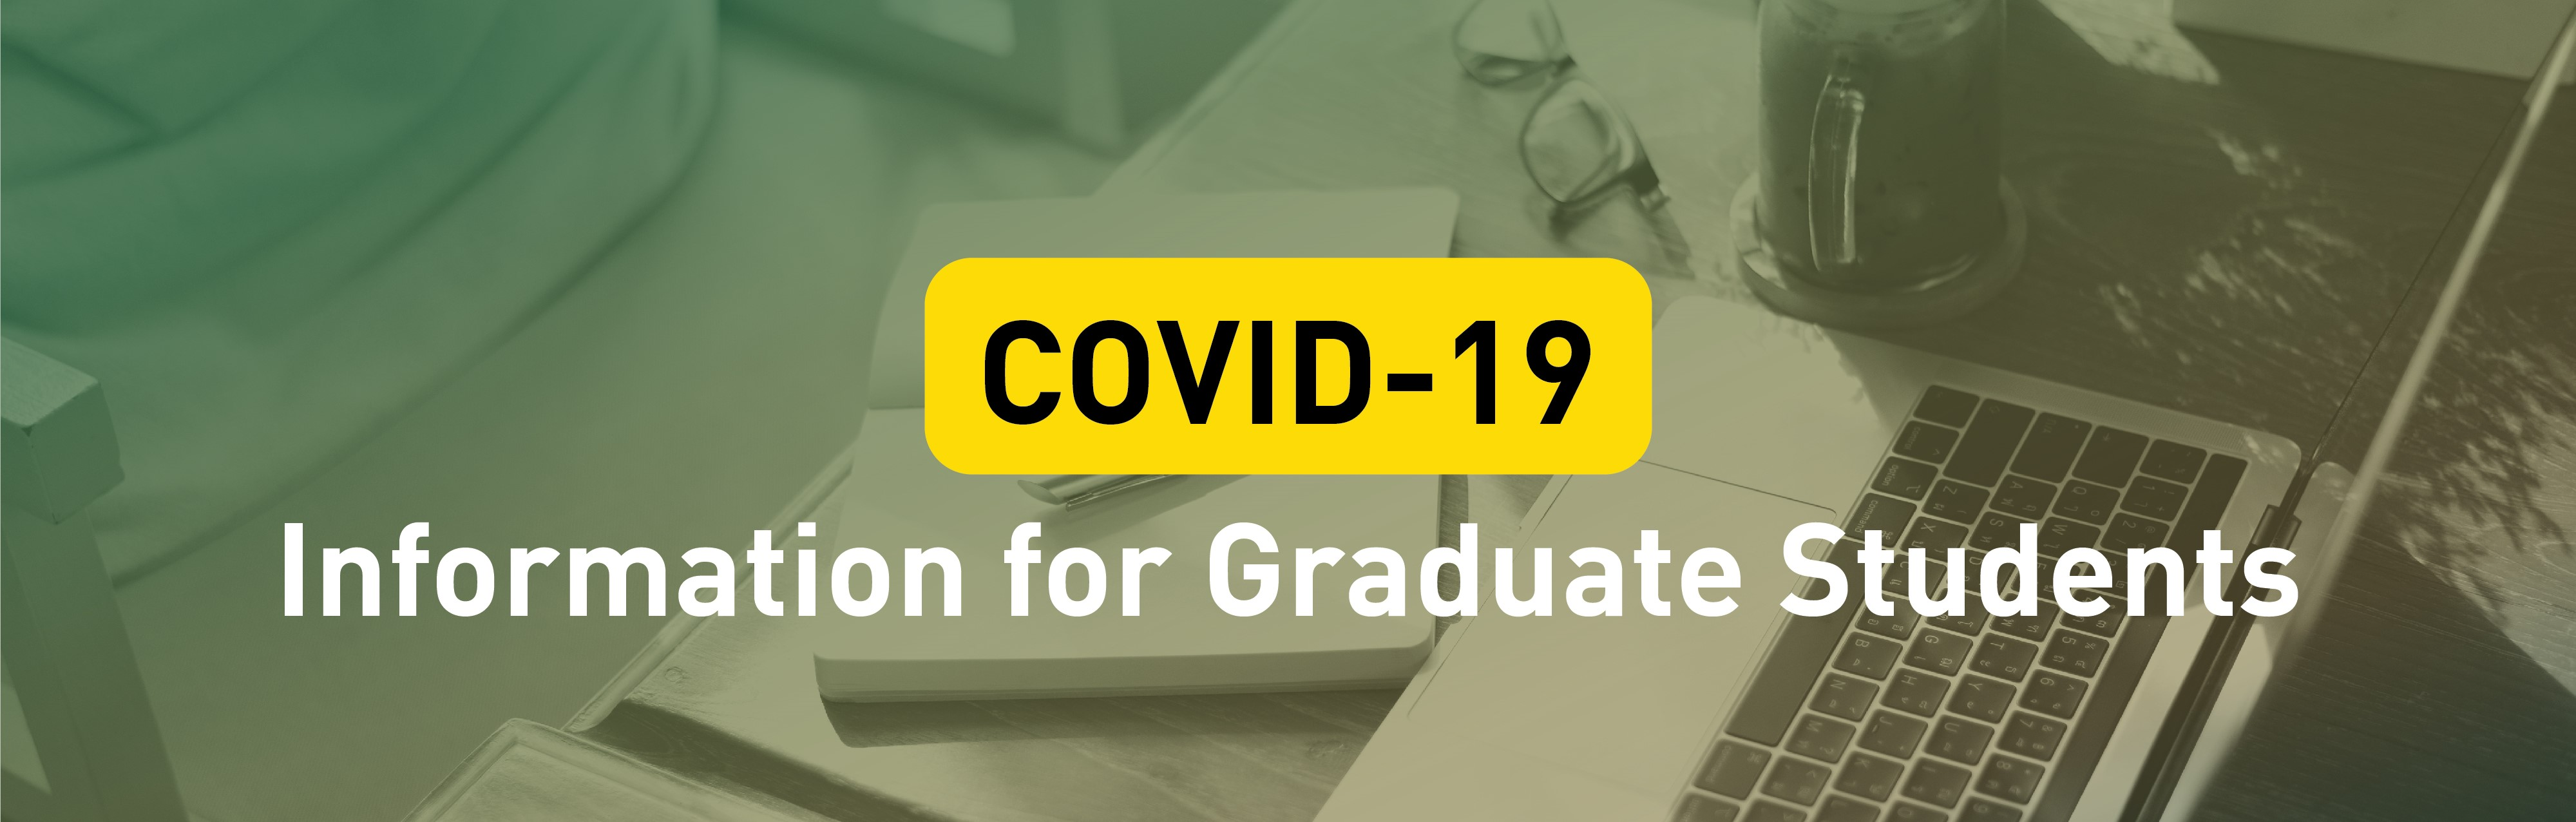 Covid 19 Information For Graduate Students Faculty Of Graduate Studies And Research